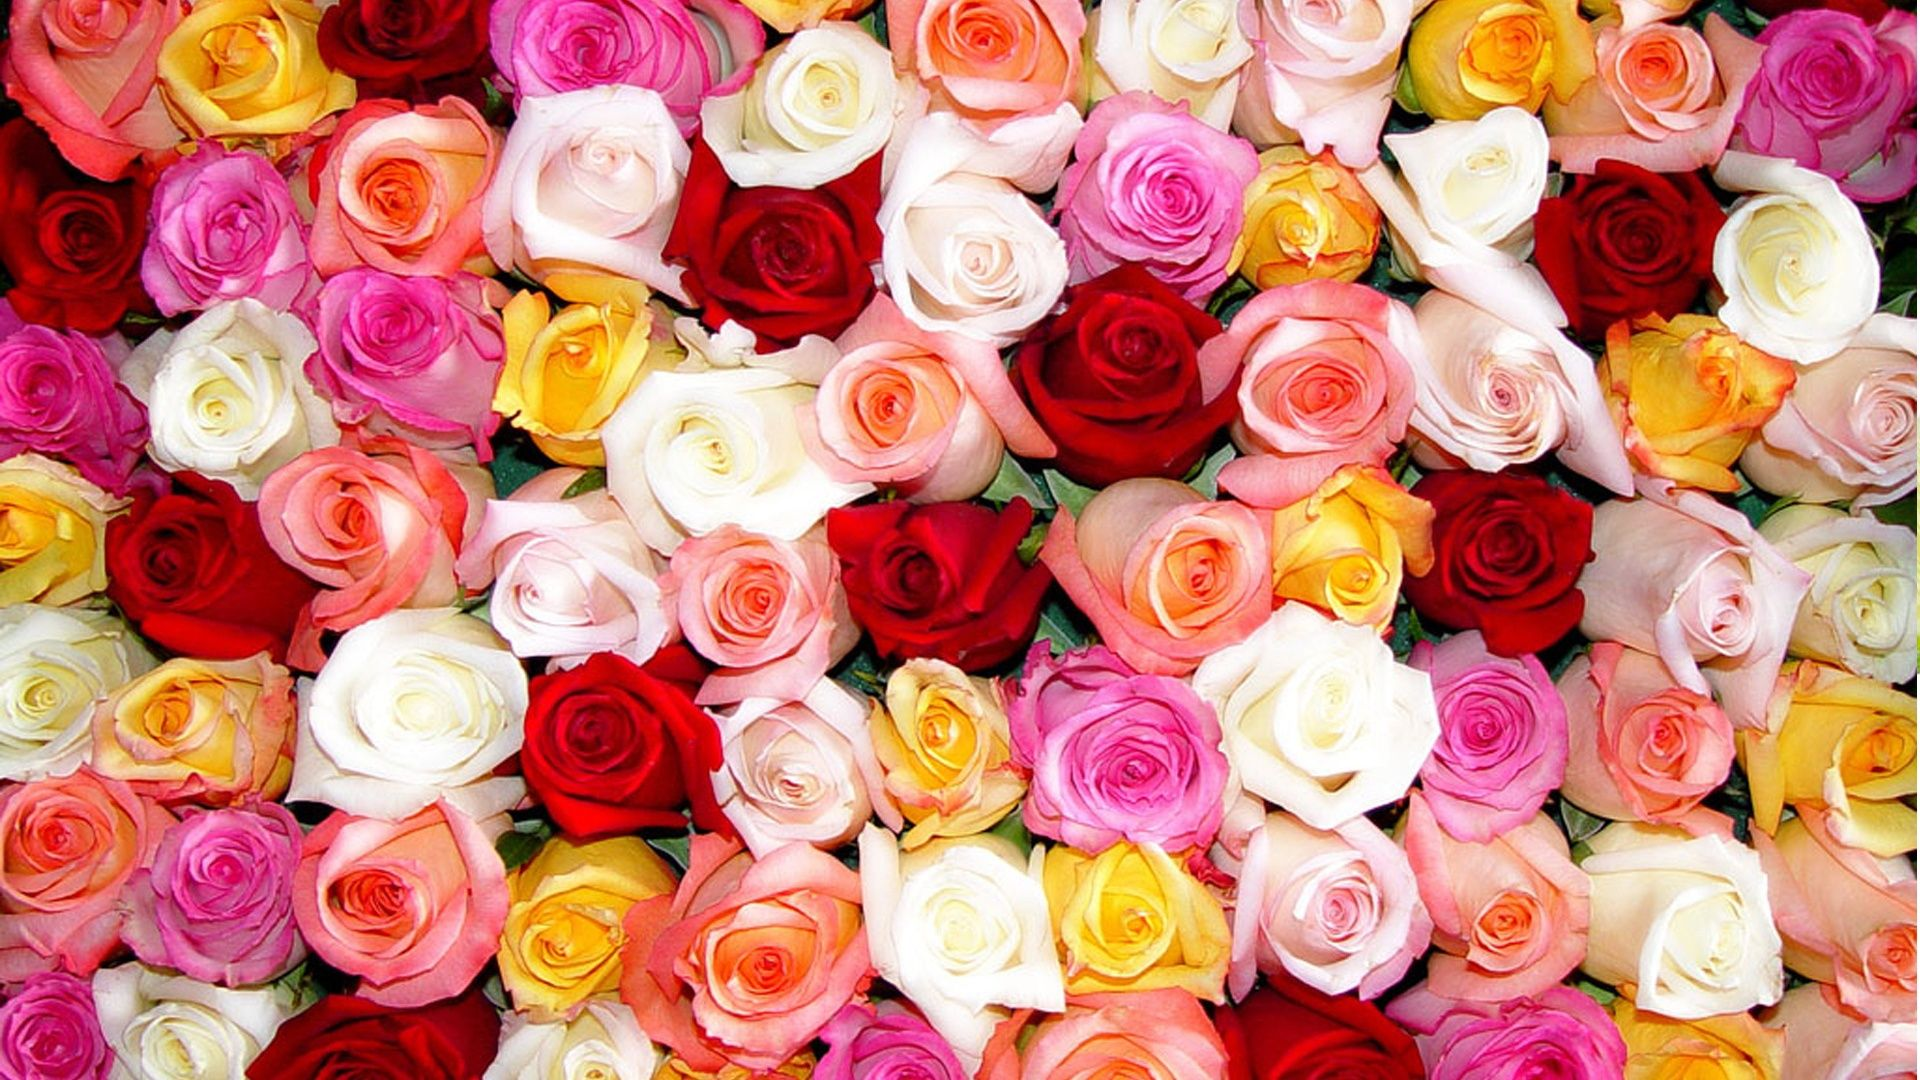 Colorful Roses Desktop Wallpapers Top Free Colorful Roses